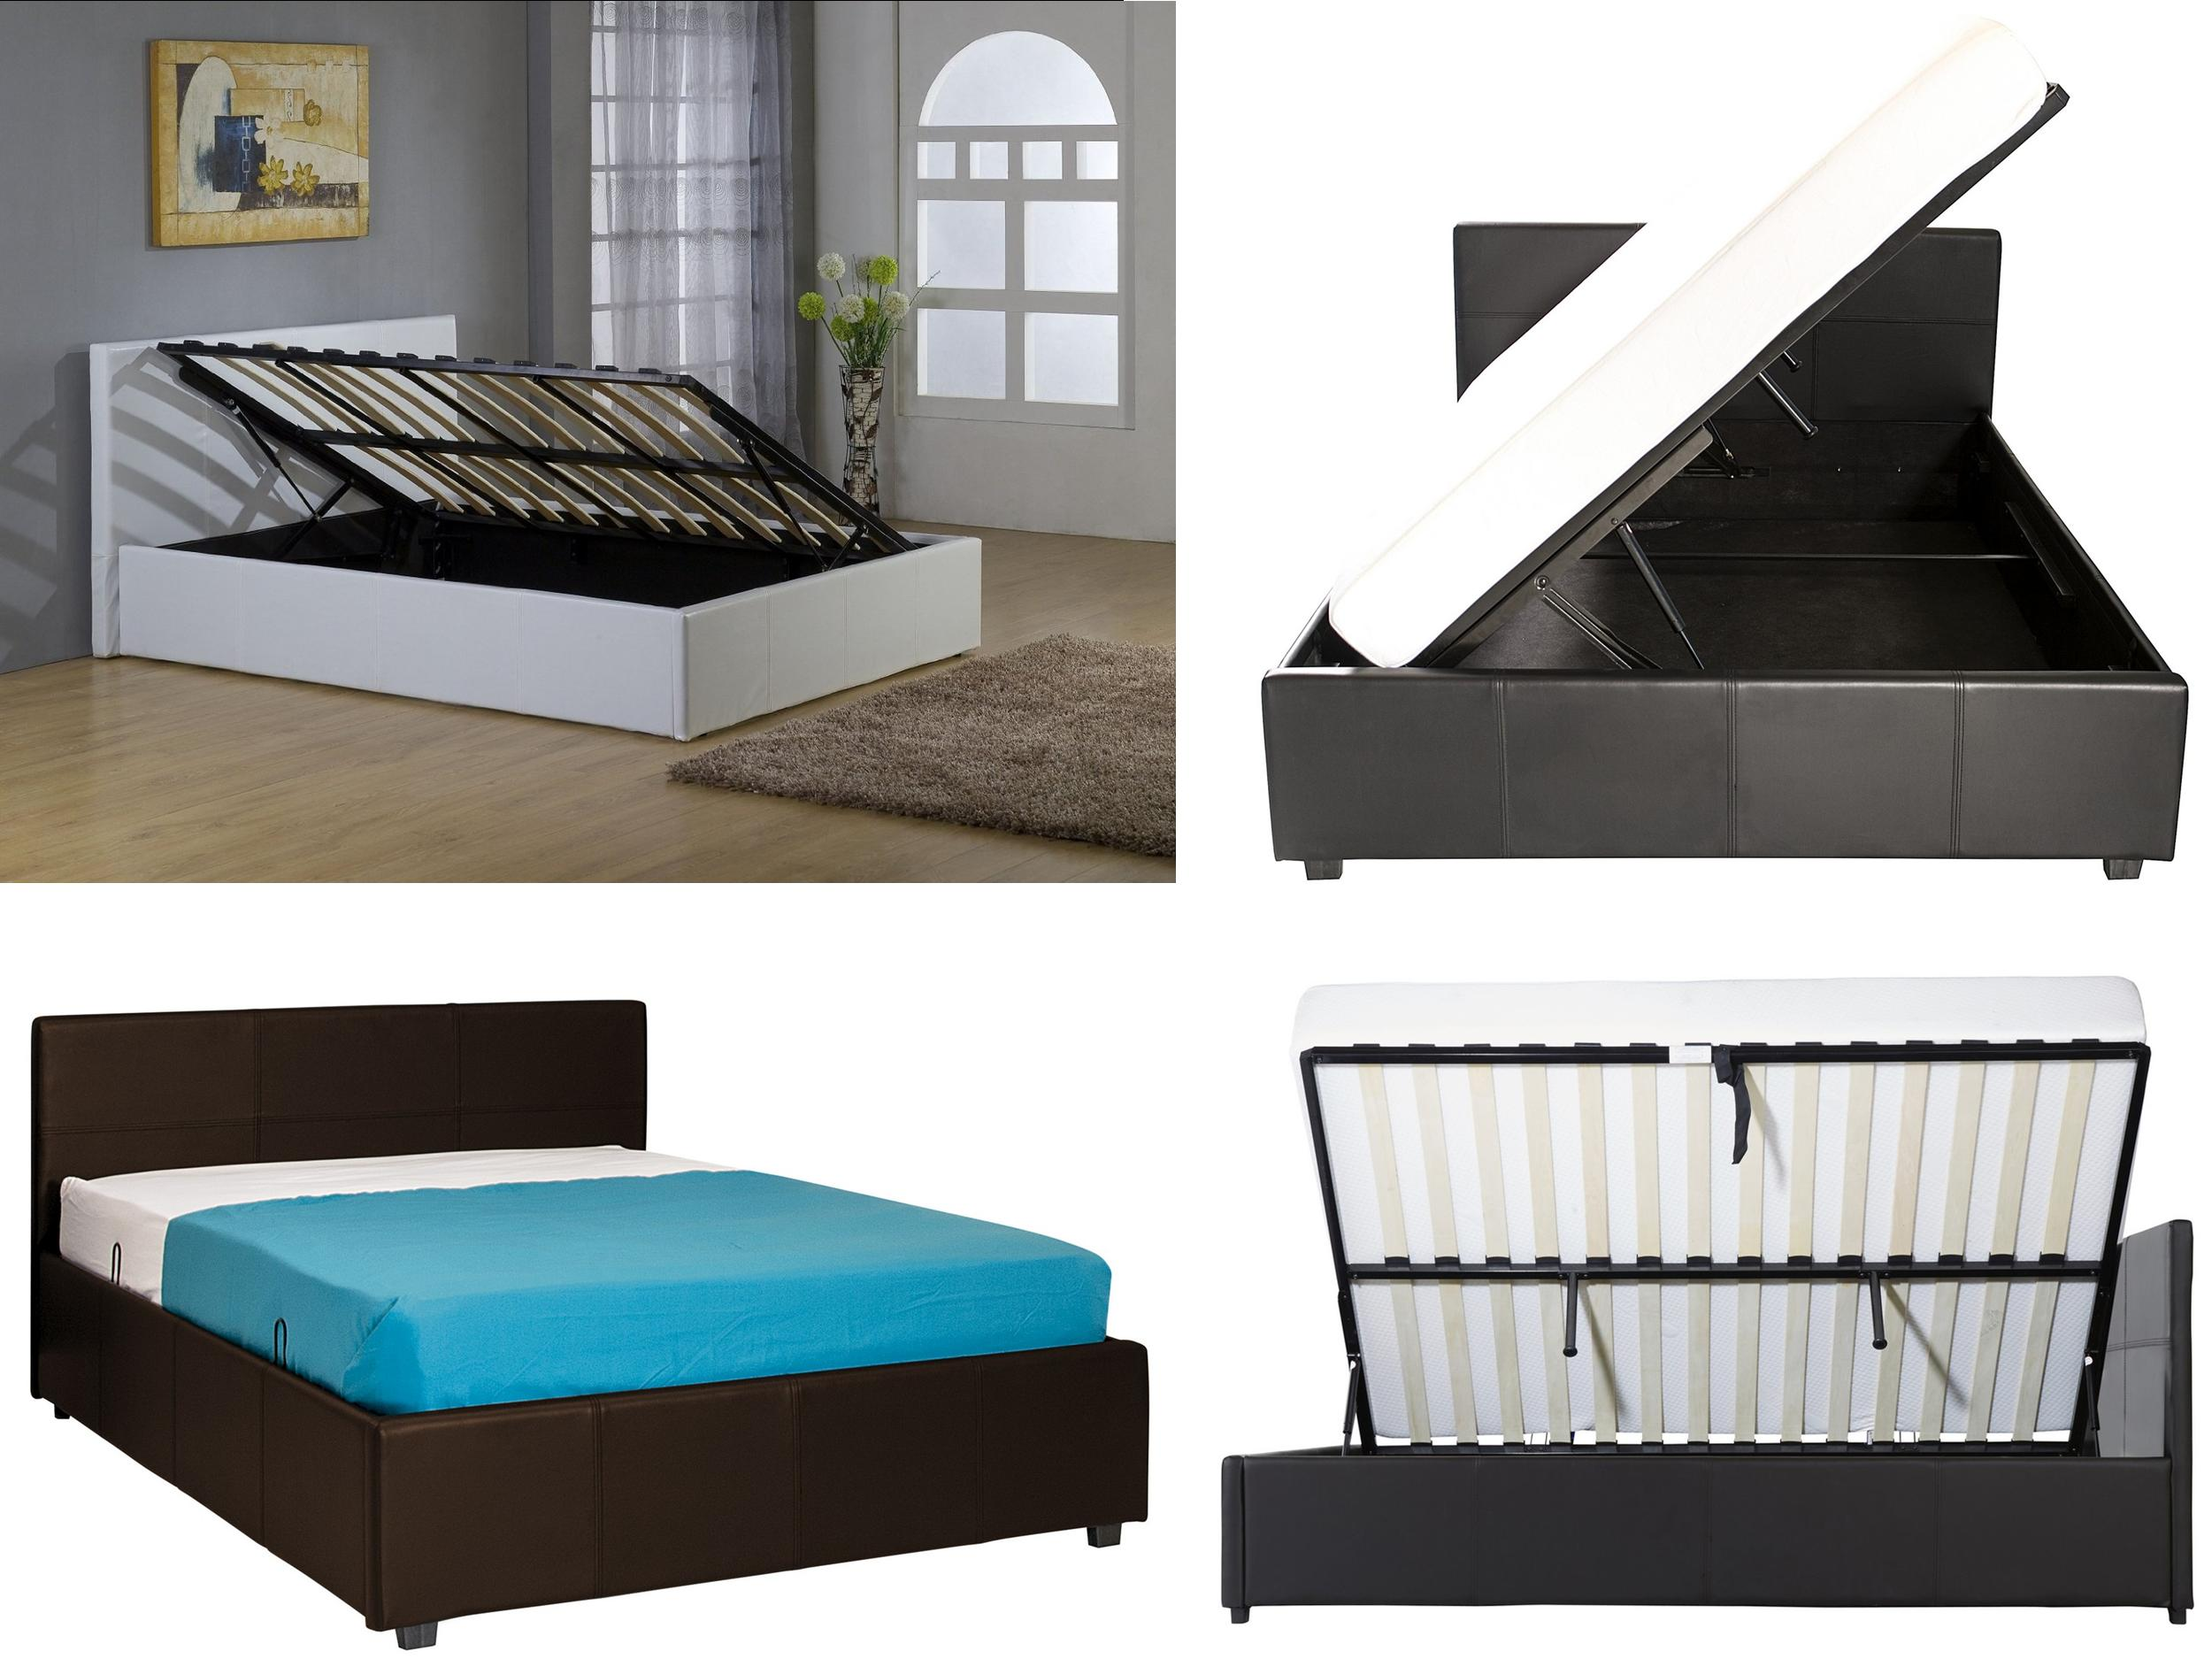 Gas Lift Ottoman Bed Details About Side Lift Ottoman Storage Bed Single Small Double Double Kingsize Gas Lift